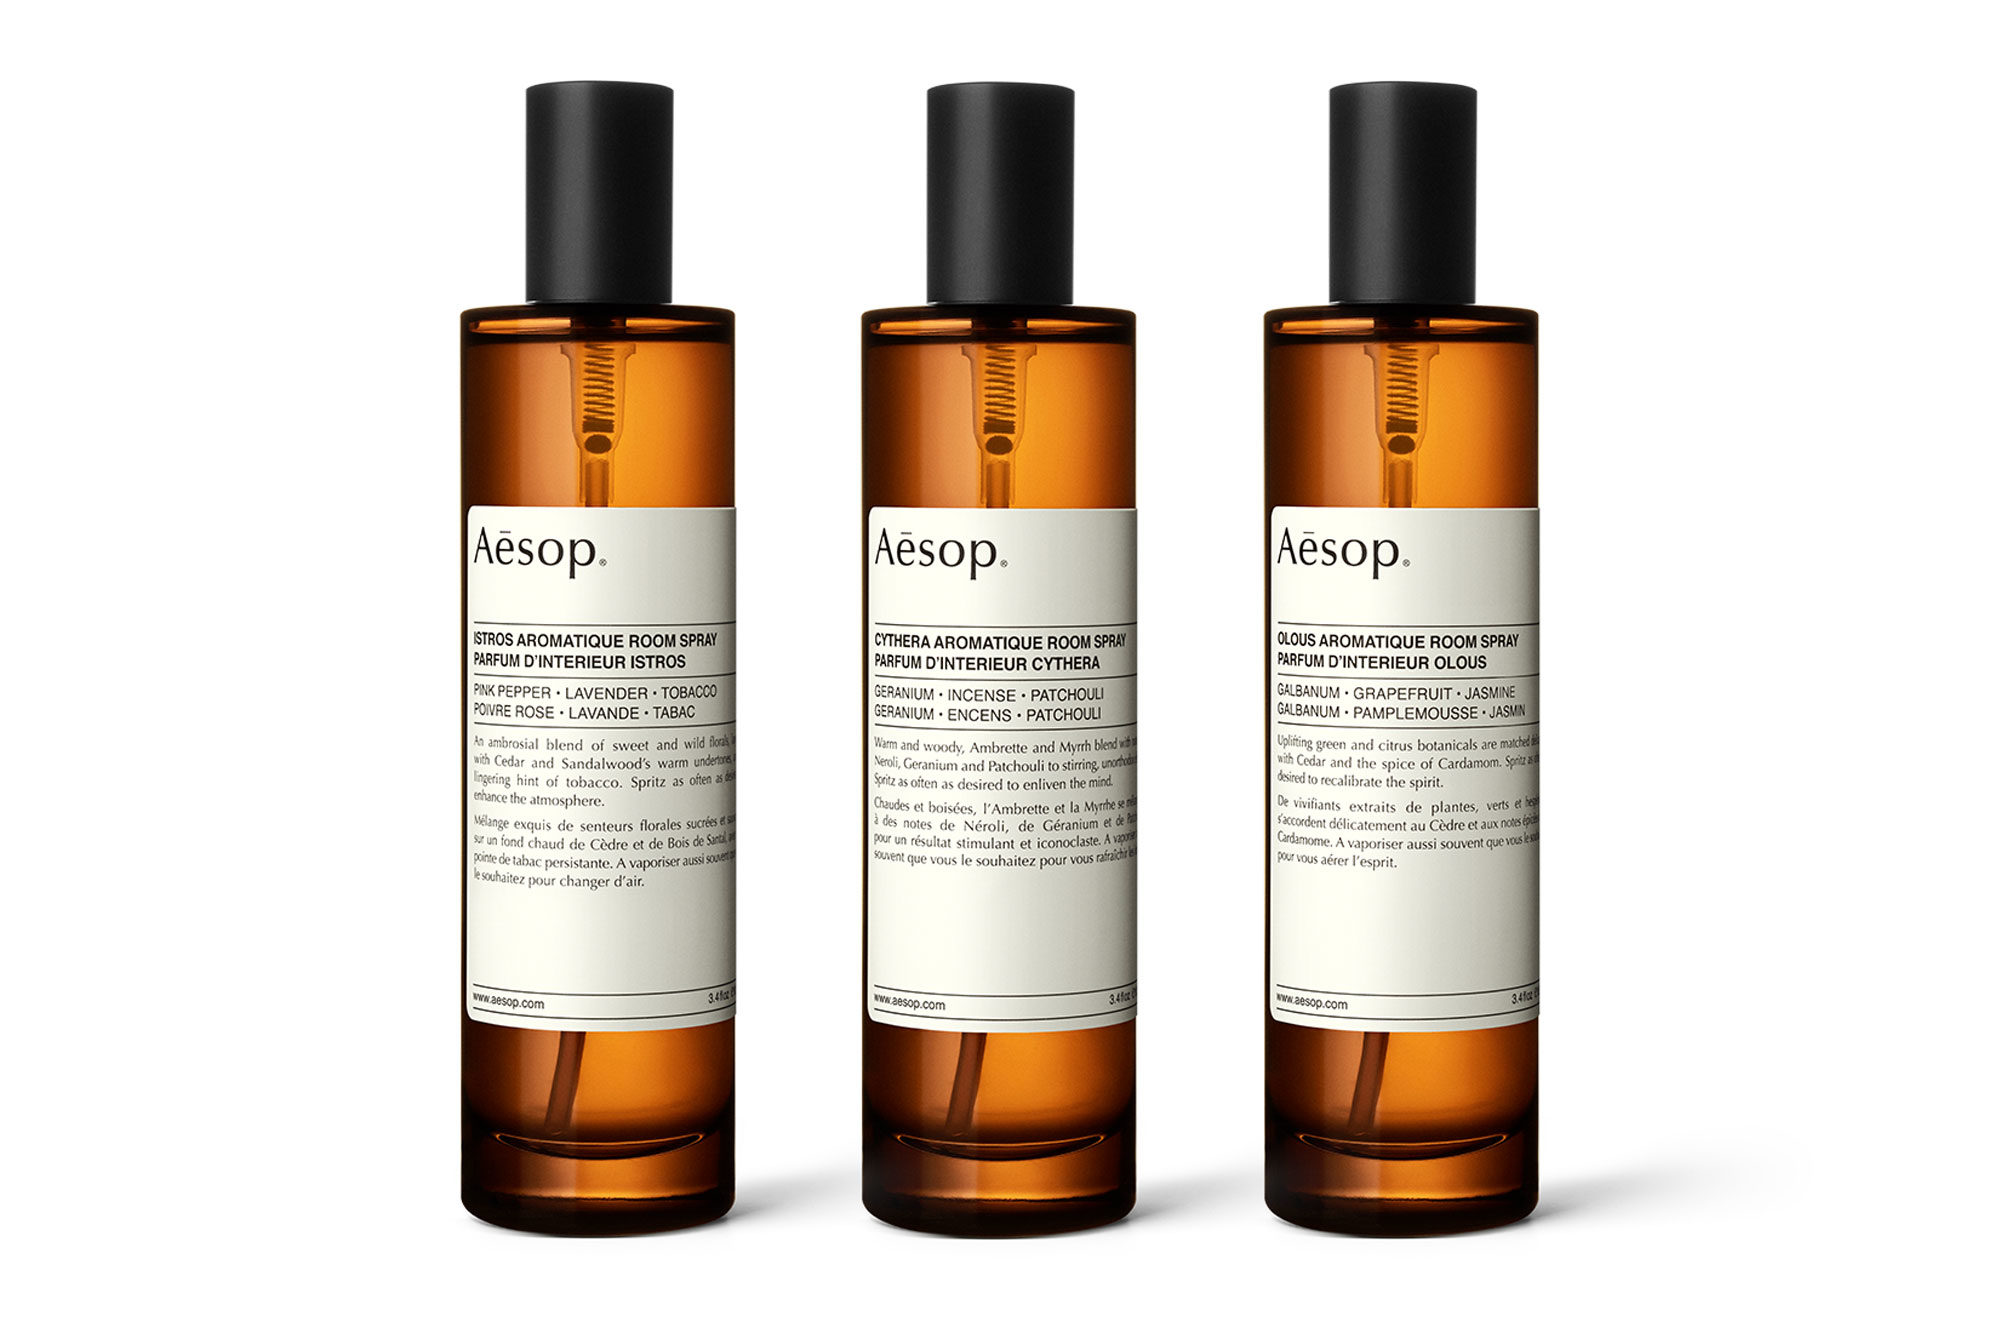 Aesop S Signature Aesthetic Now Comes In A Bottle Surface